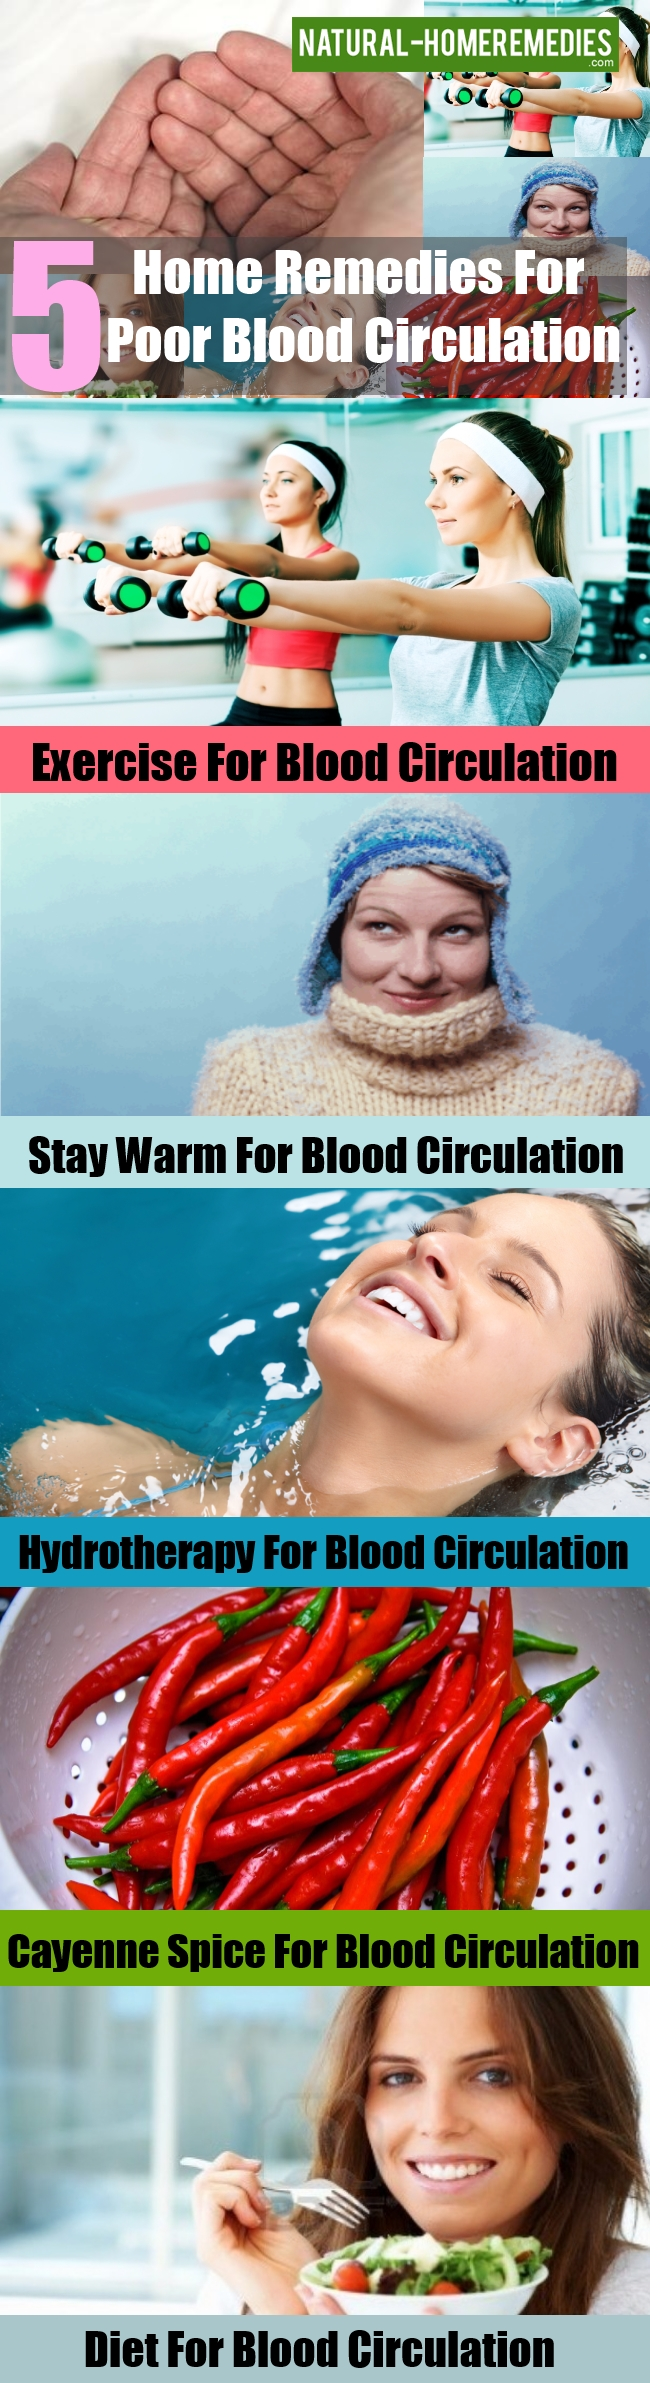 Home Remedies For Poor Blood Circulation